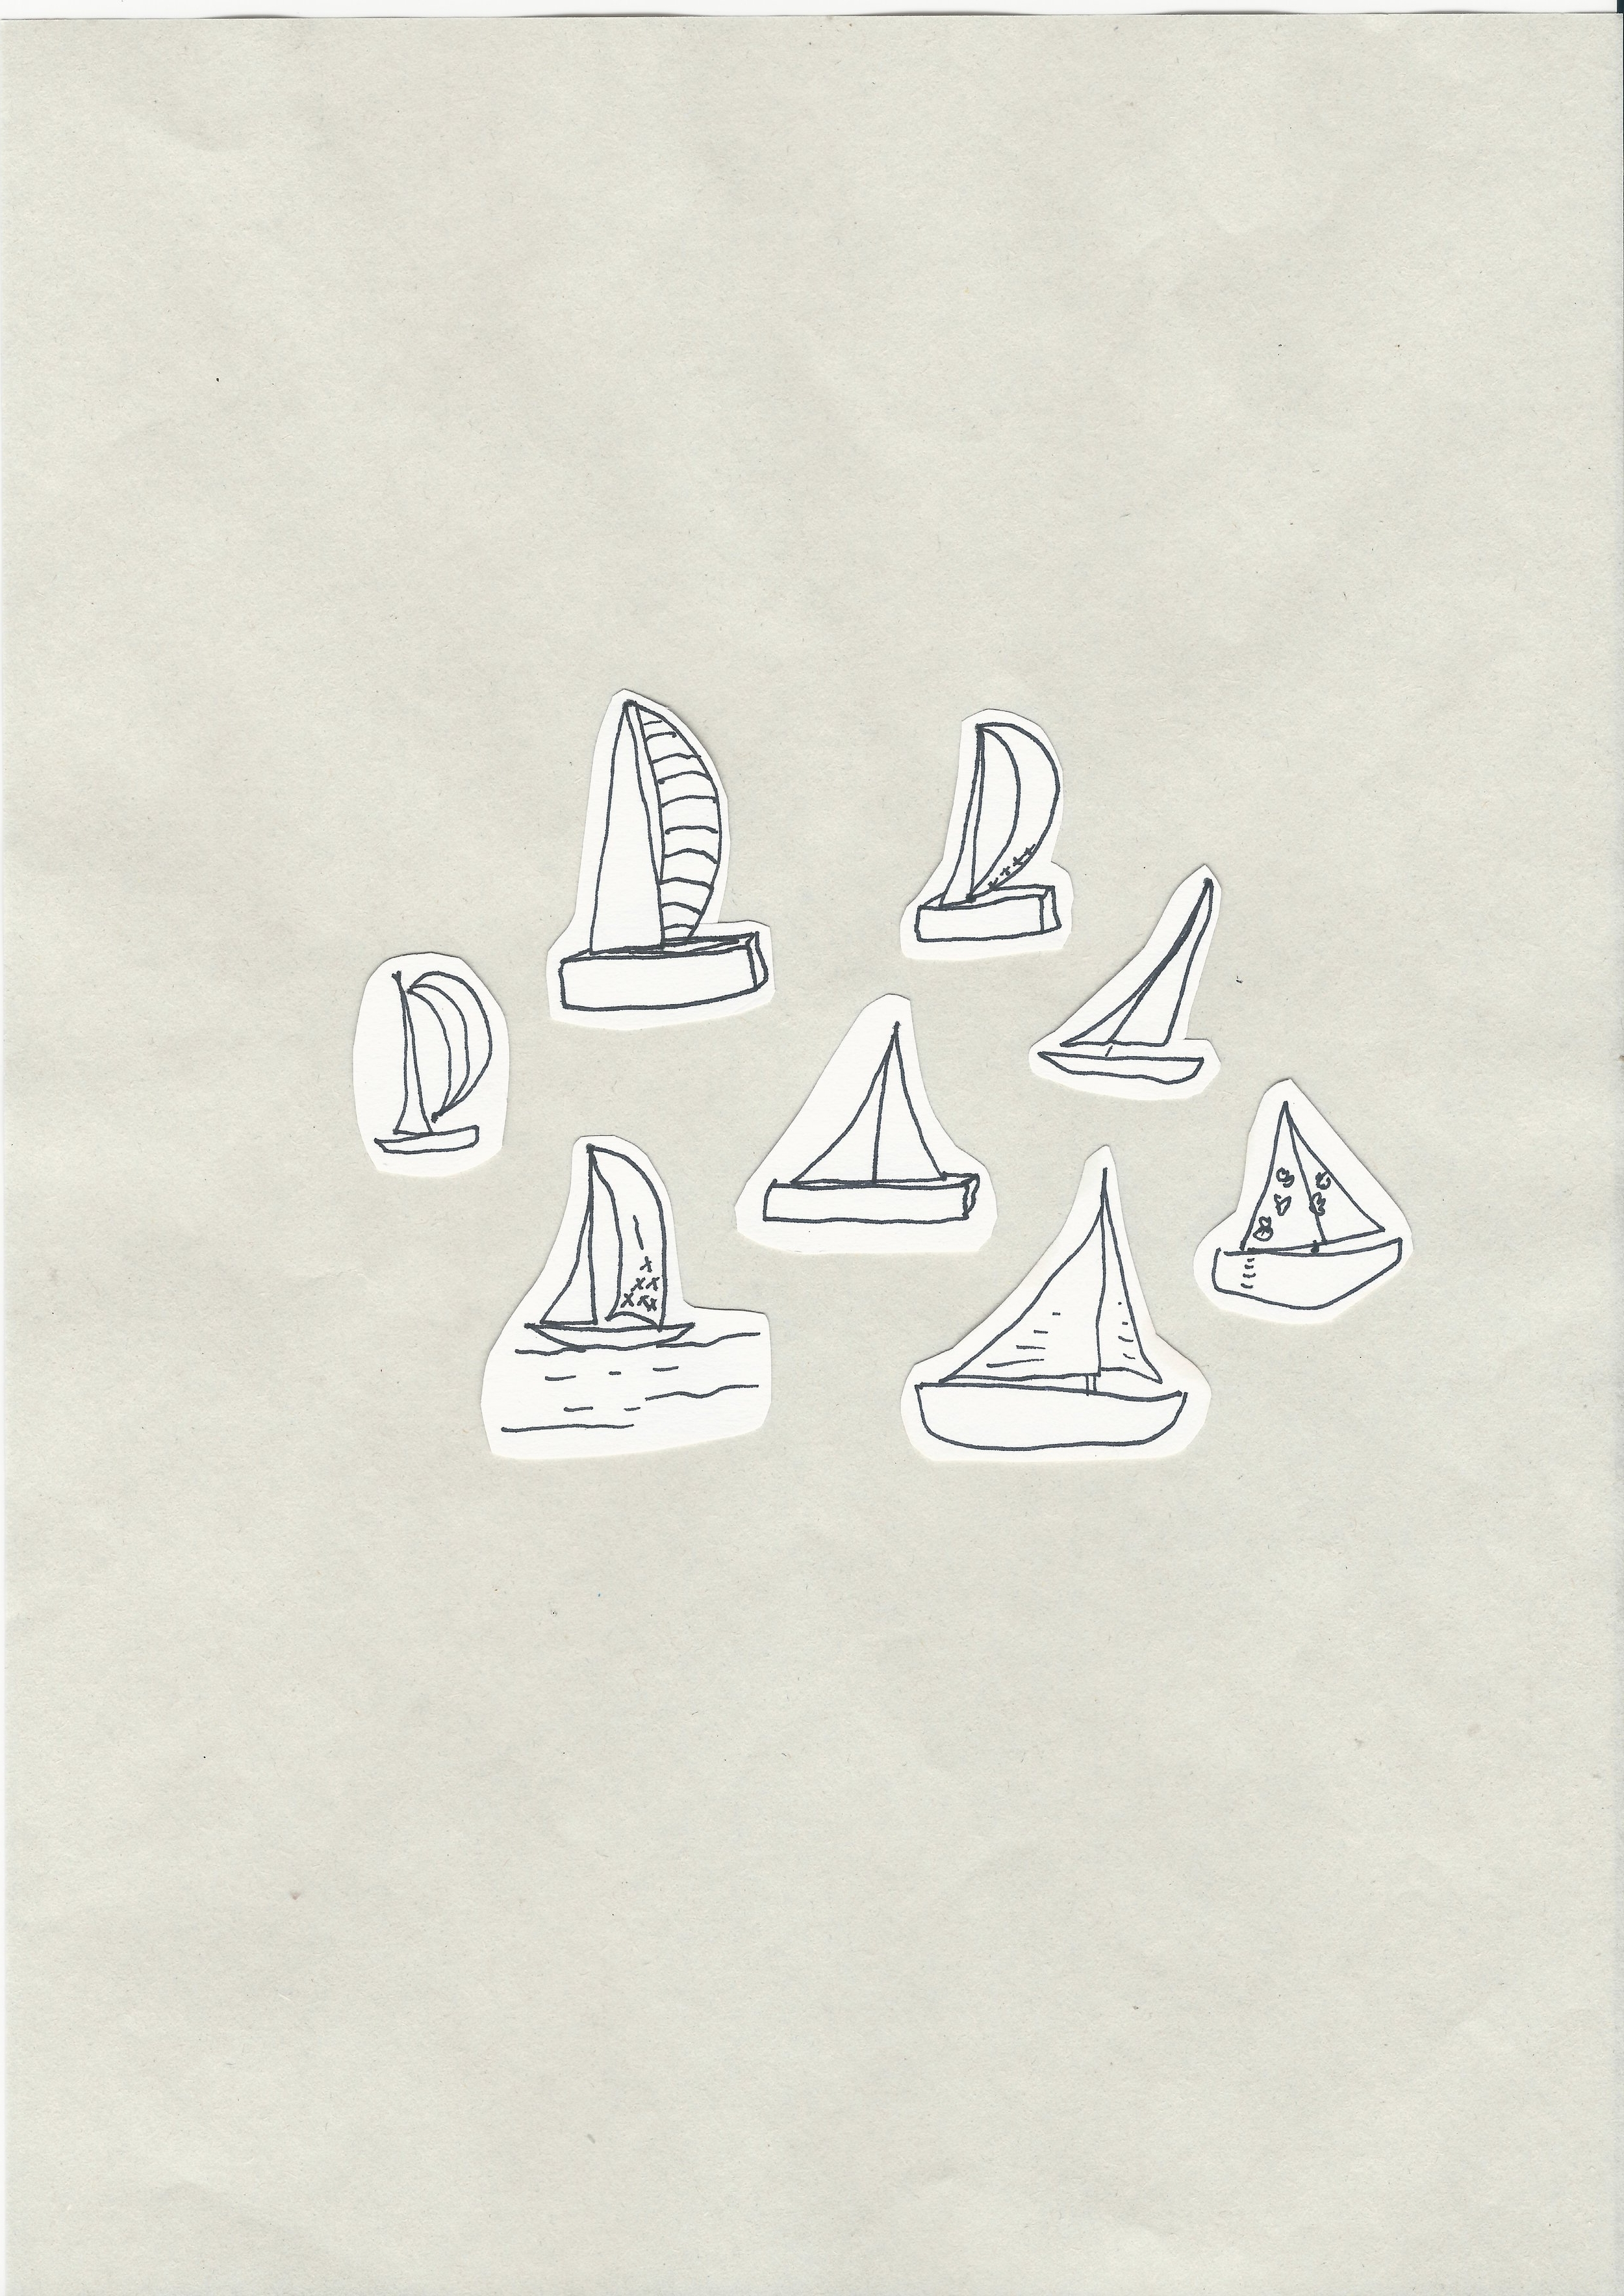 I grouped all of my sailboats together